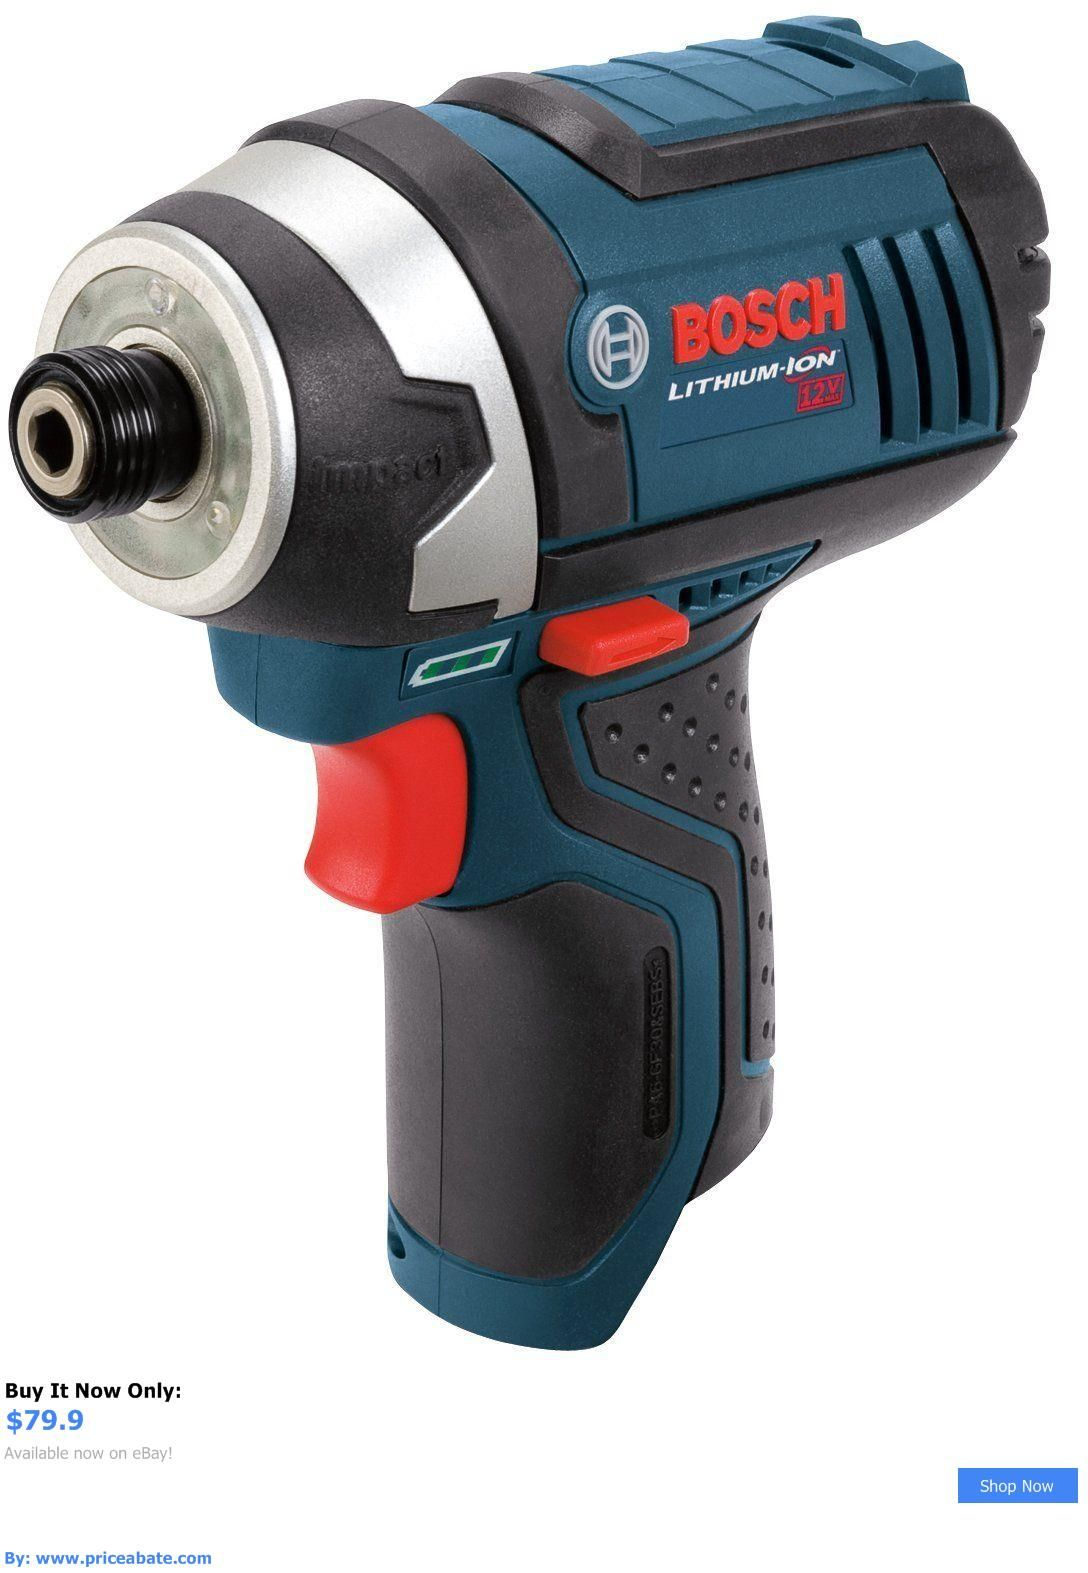 Tools Bosch Ps41b 12v 12 Volt Cordless Lithium Ion Impact Driver Drill New Tool Buy It Now Only 79 9 Priceabatetoo Impact Driver Impact Drivers Driver Tool